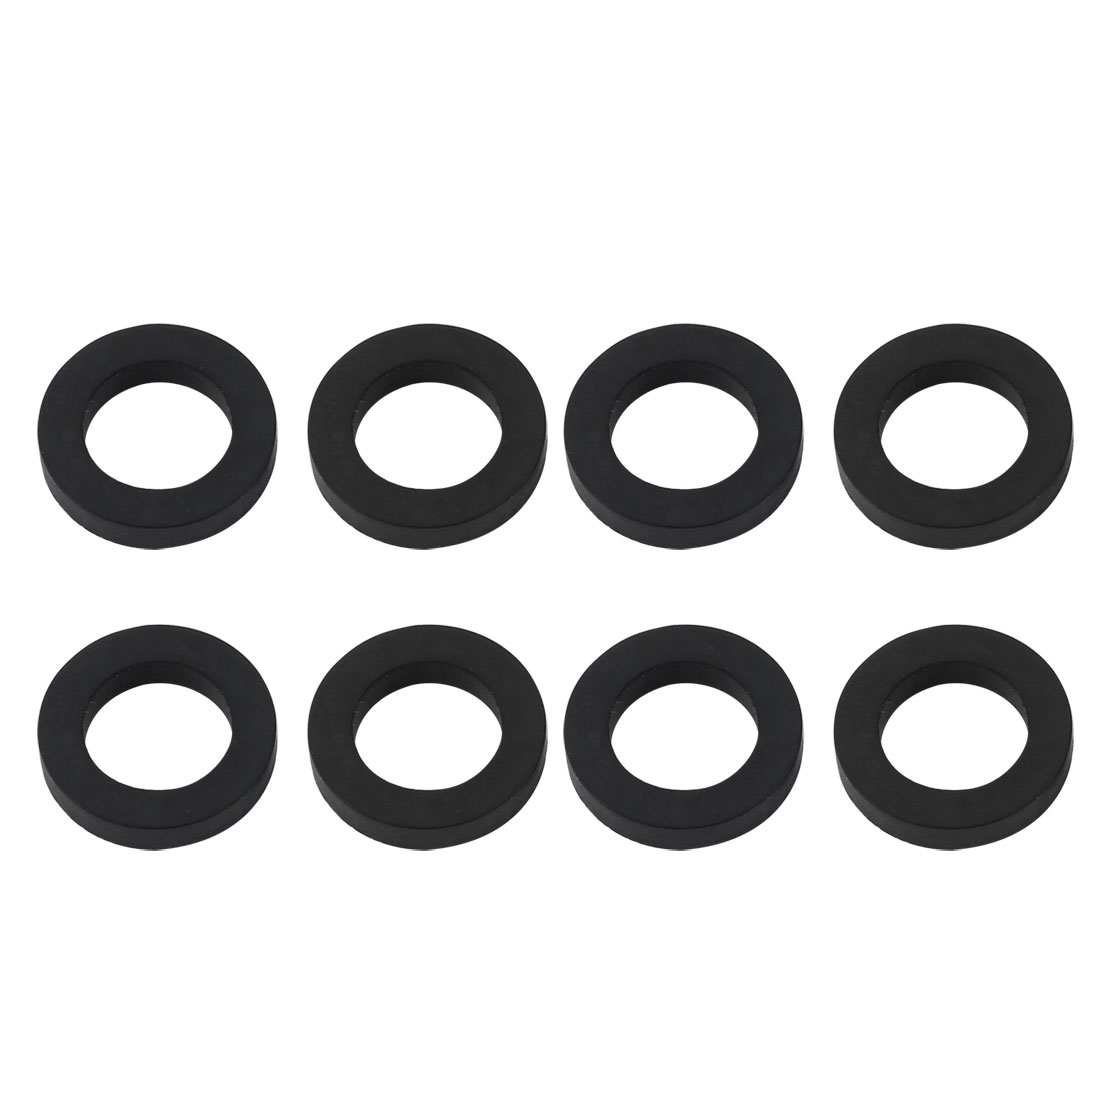 8pcs 16mm Outer Dia 3mm Thickness Sealing Ring O-shape Rubber Grommet Black